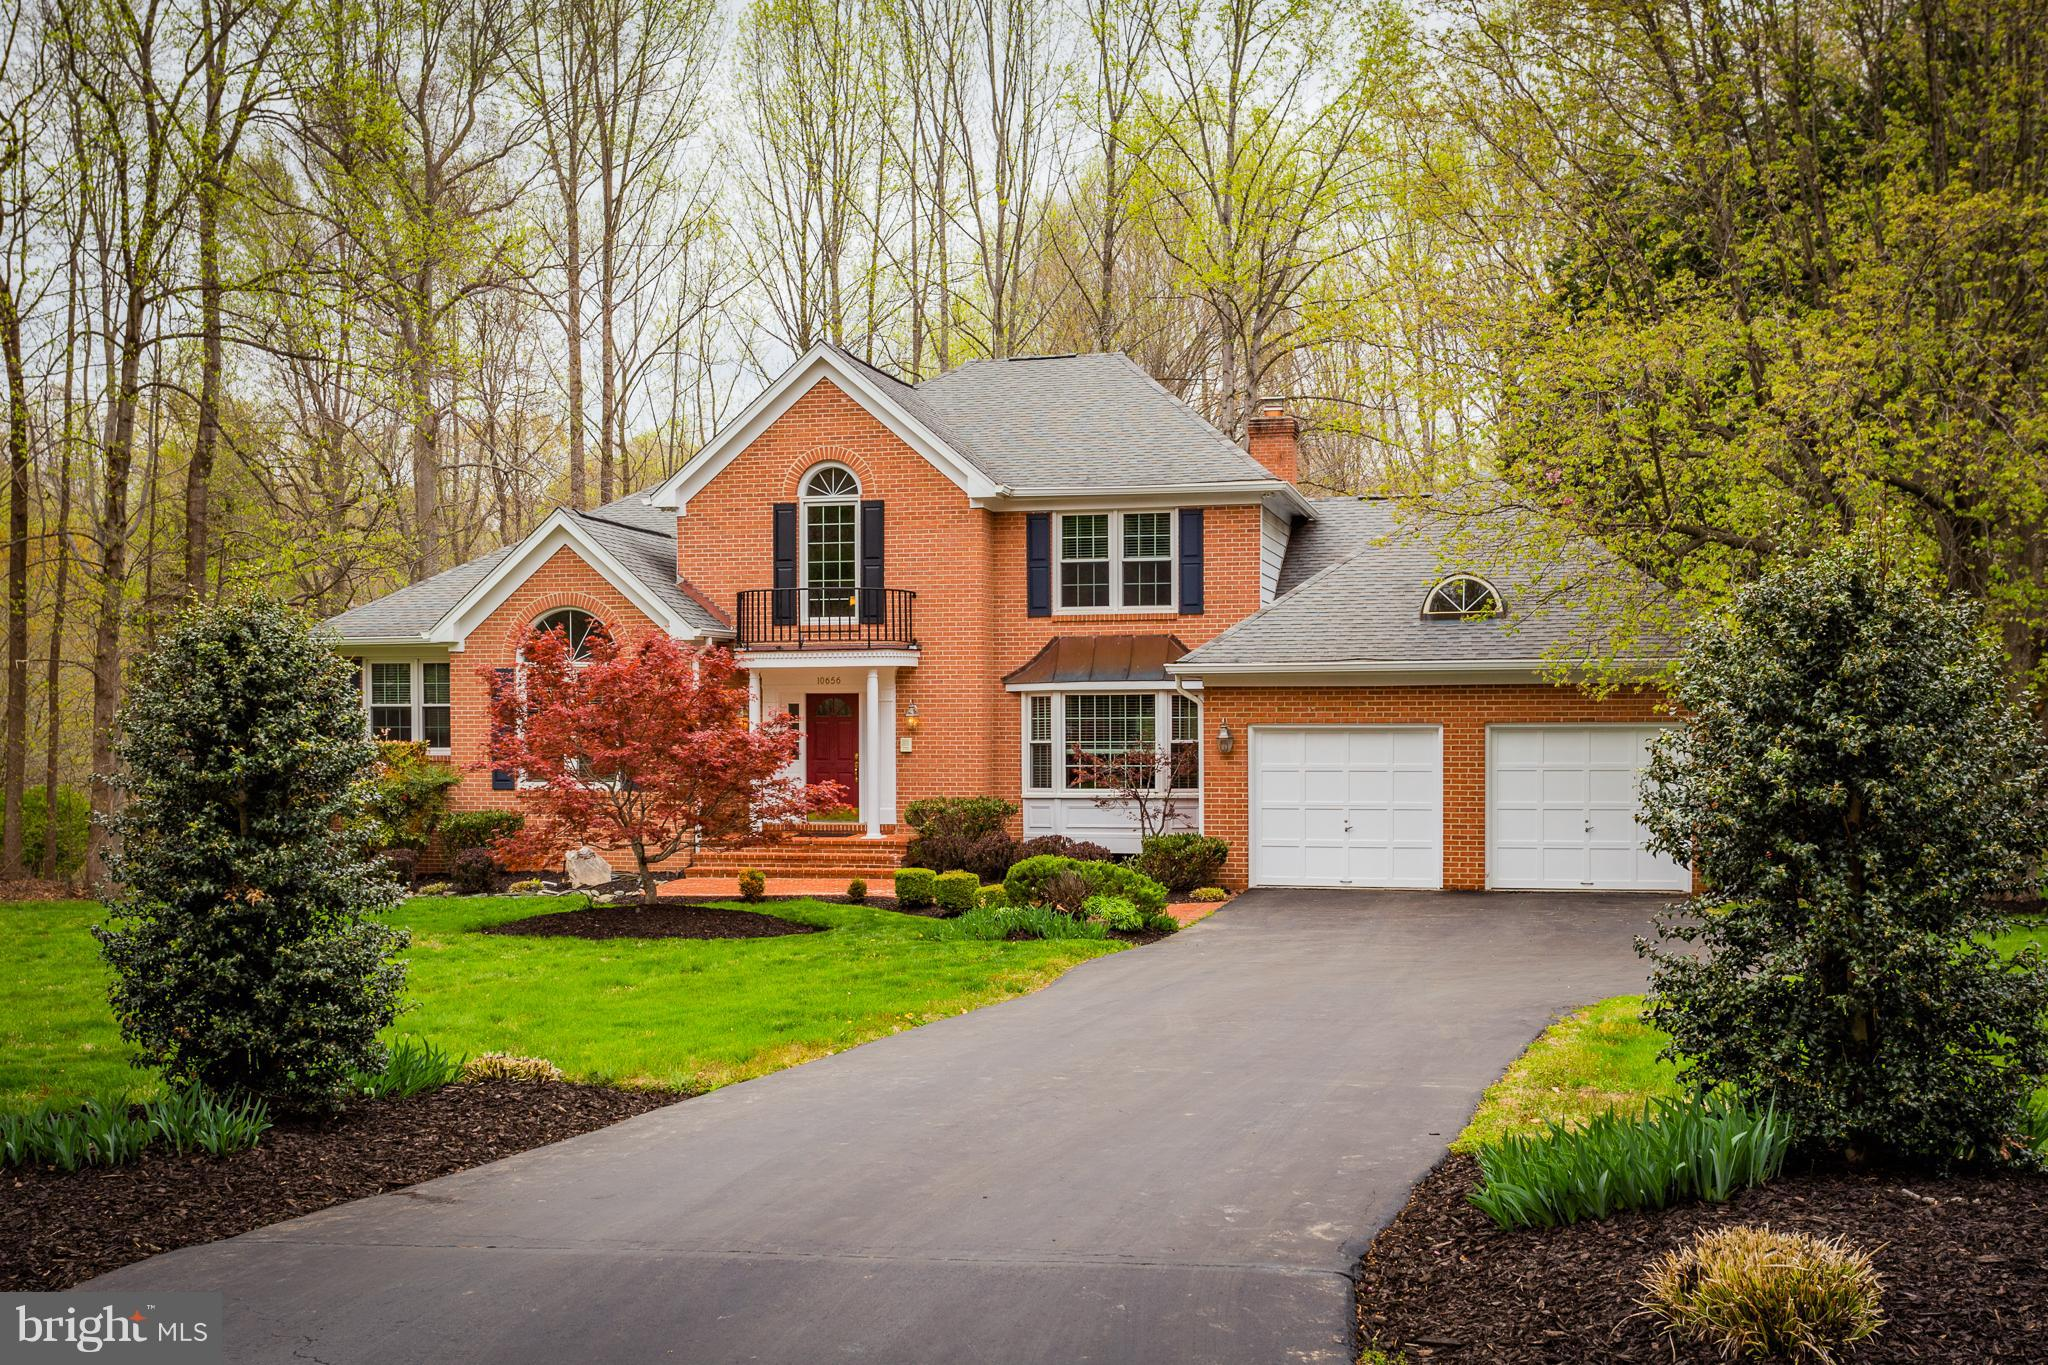 Beautiful, well-designed Westover model w/main master suite & luxury FBA! Beautiful wood flrs thruout! Gourmet Kitchen w/Island, Granite, Stainless Appliances & sunny BrkstRm! Adjoining FamRm w/stone FP & access to Deck! Butler's Pantry to DR- Fantastic walkout basement finished w/RecRm, Built-ins, Corner Wet Bar, BR5, FBA & Storage- Landscaped yard! Robinson School- Burke Lake Park & Golf nearby!